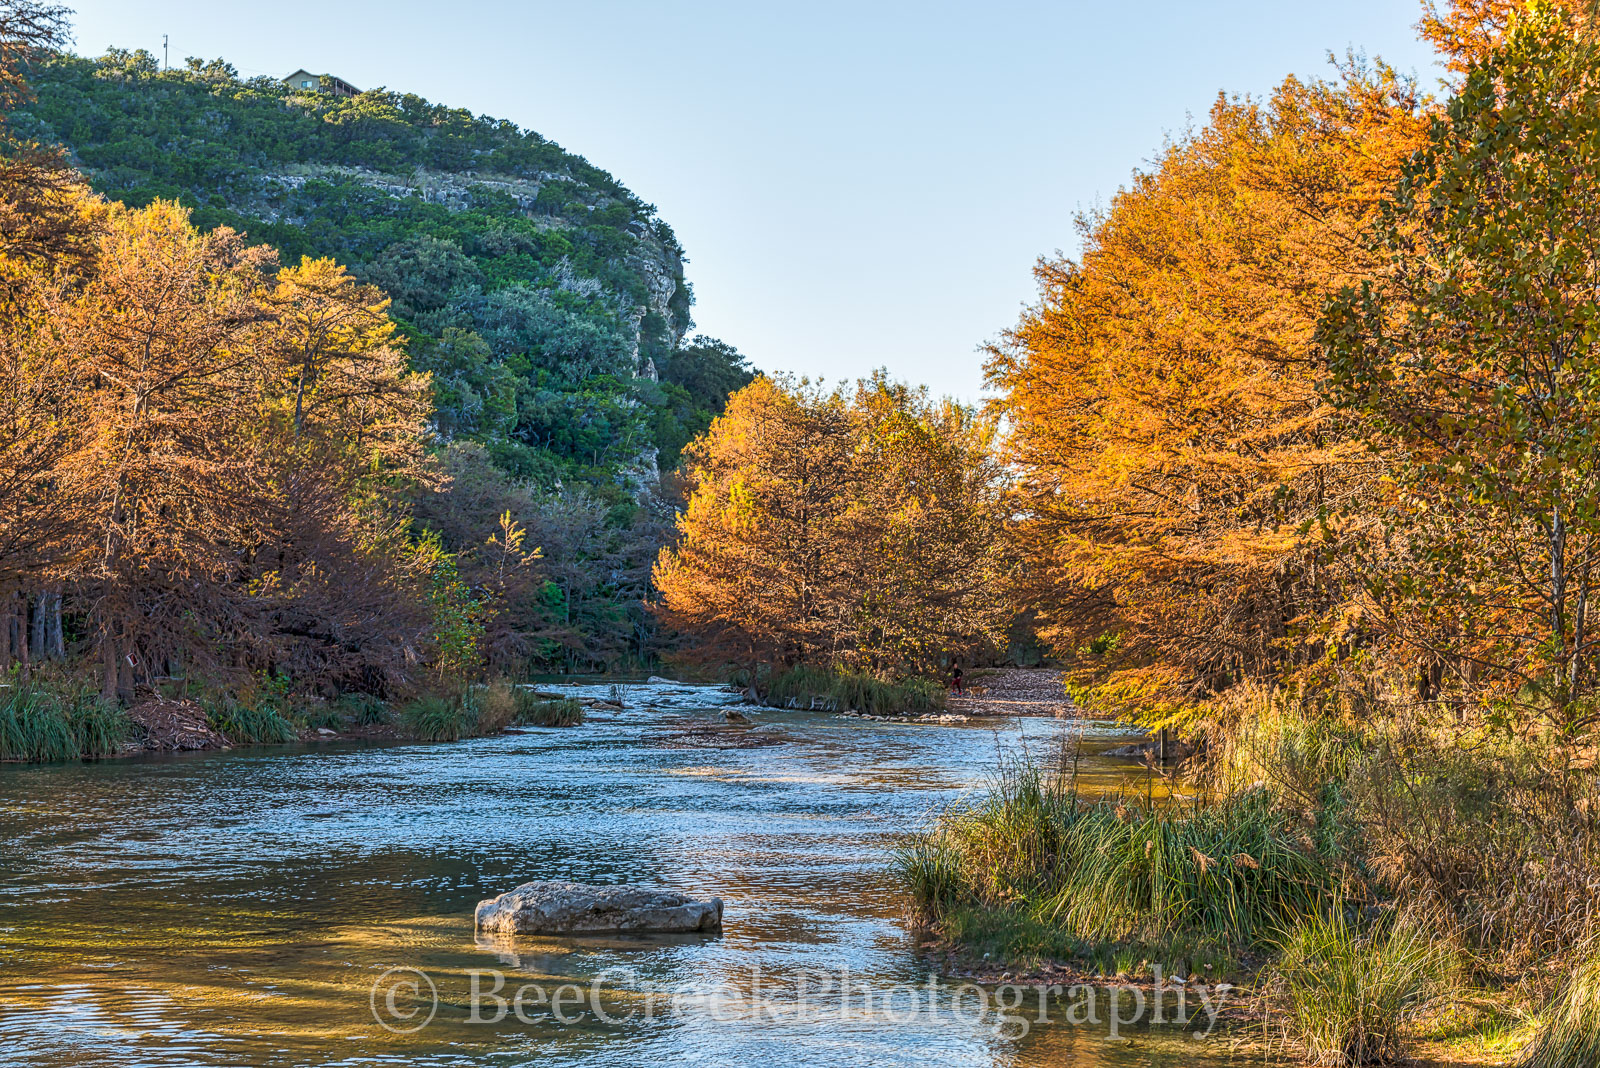 America, American, Concan, Texas Hill Country, River, clear, colors, cool, cypress, fall, flowing, images of Texas, landscape, landscapes, orange, photos of Texas, pirctures of texas, rocks, rural, ru, photo